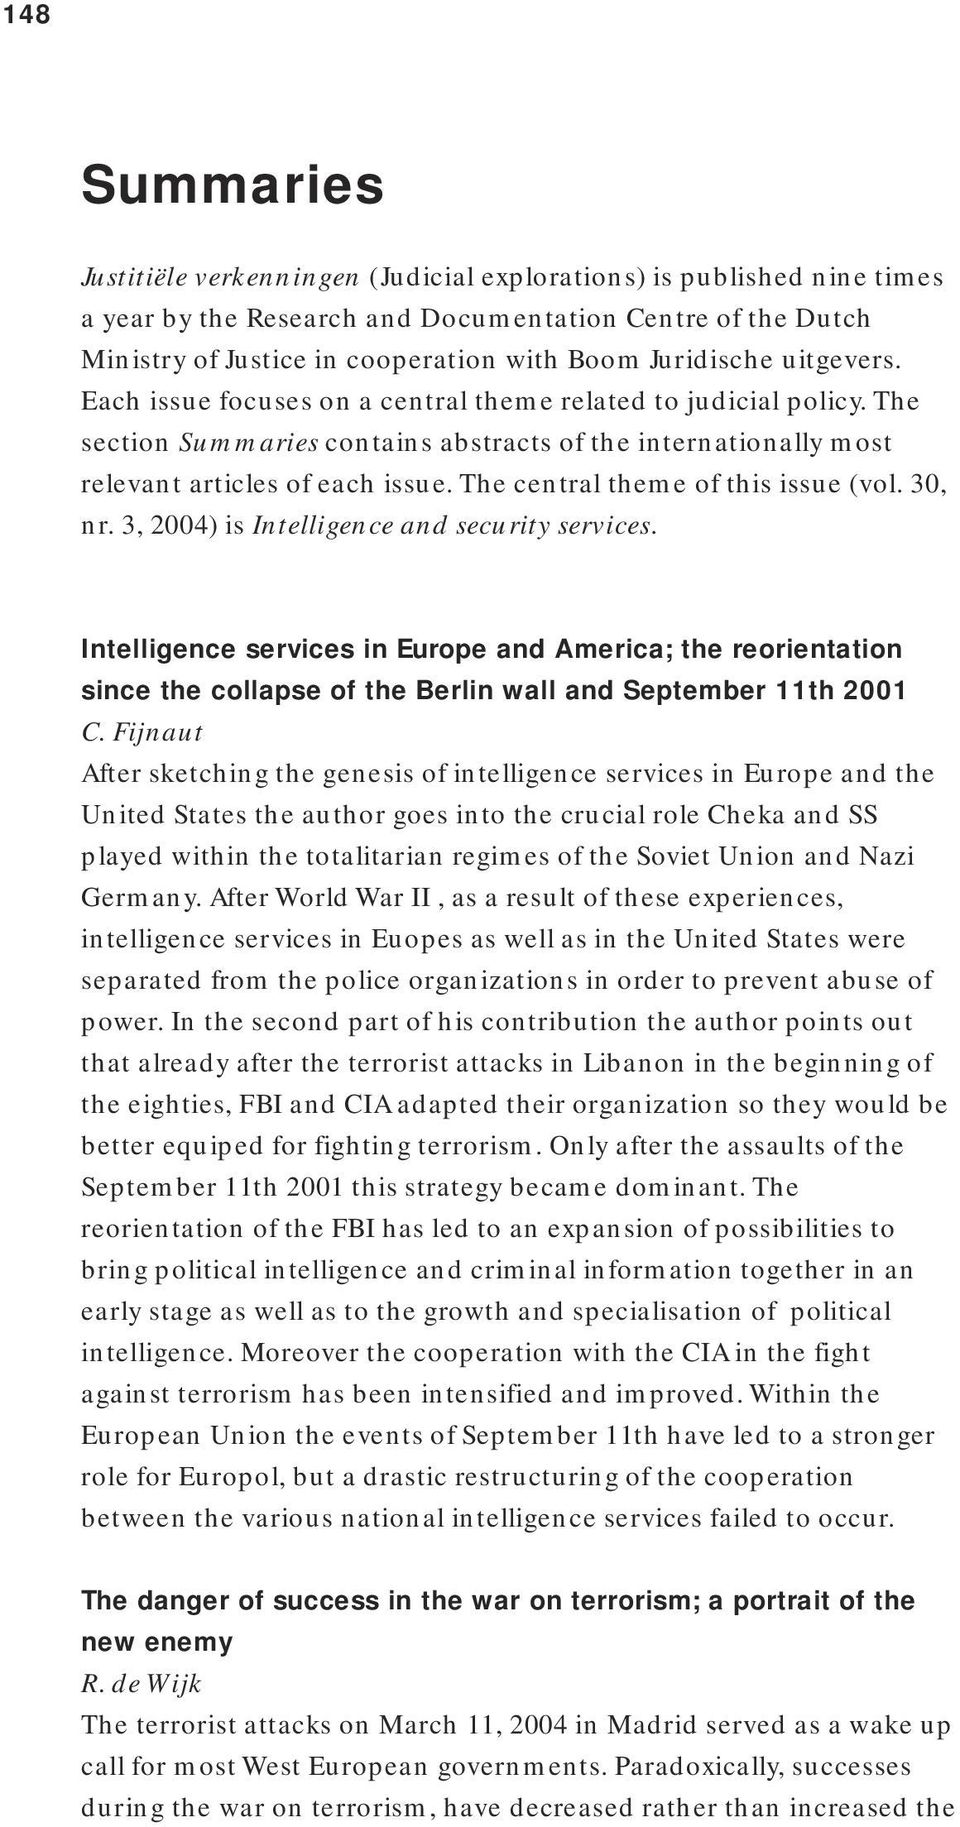 The central theme of this issue (vol. 30, nr. 3, 2004) is Intelligence and security services.